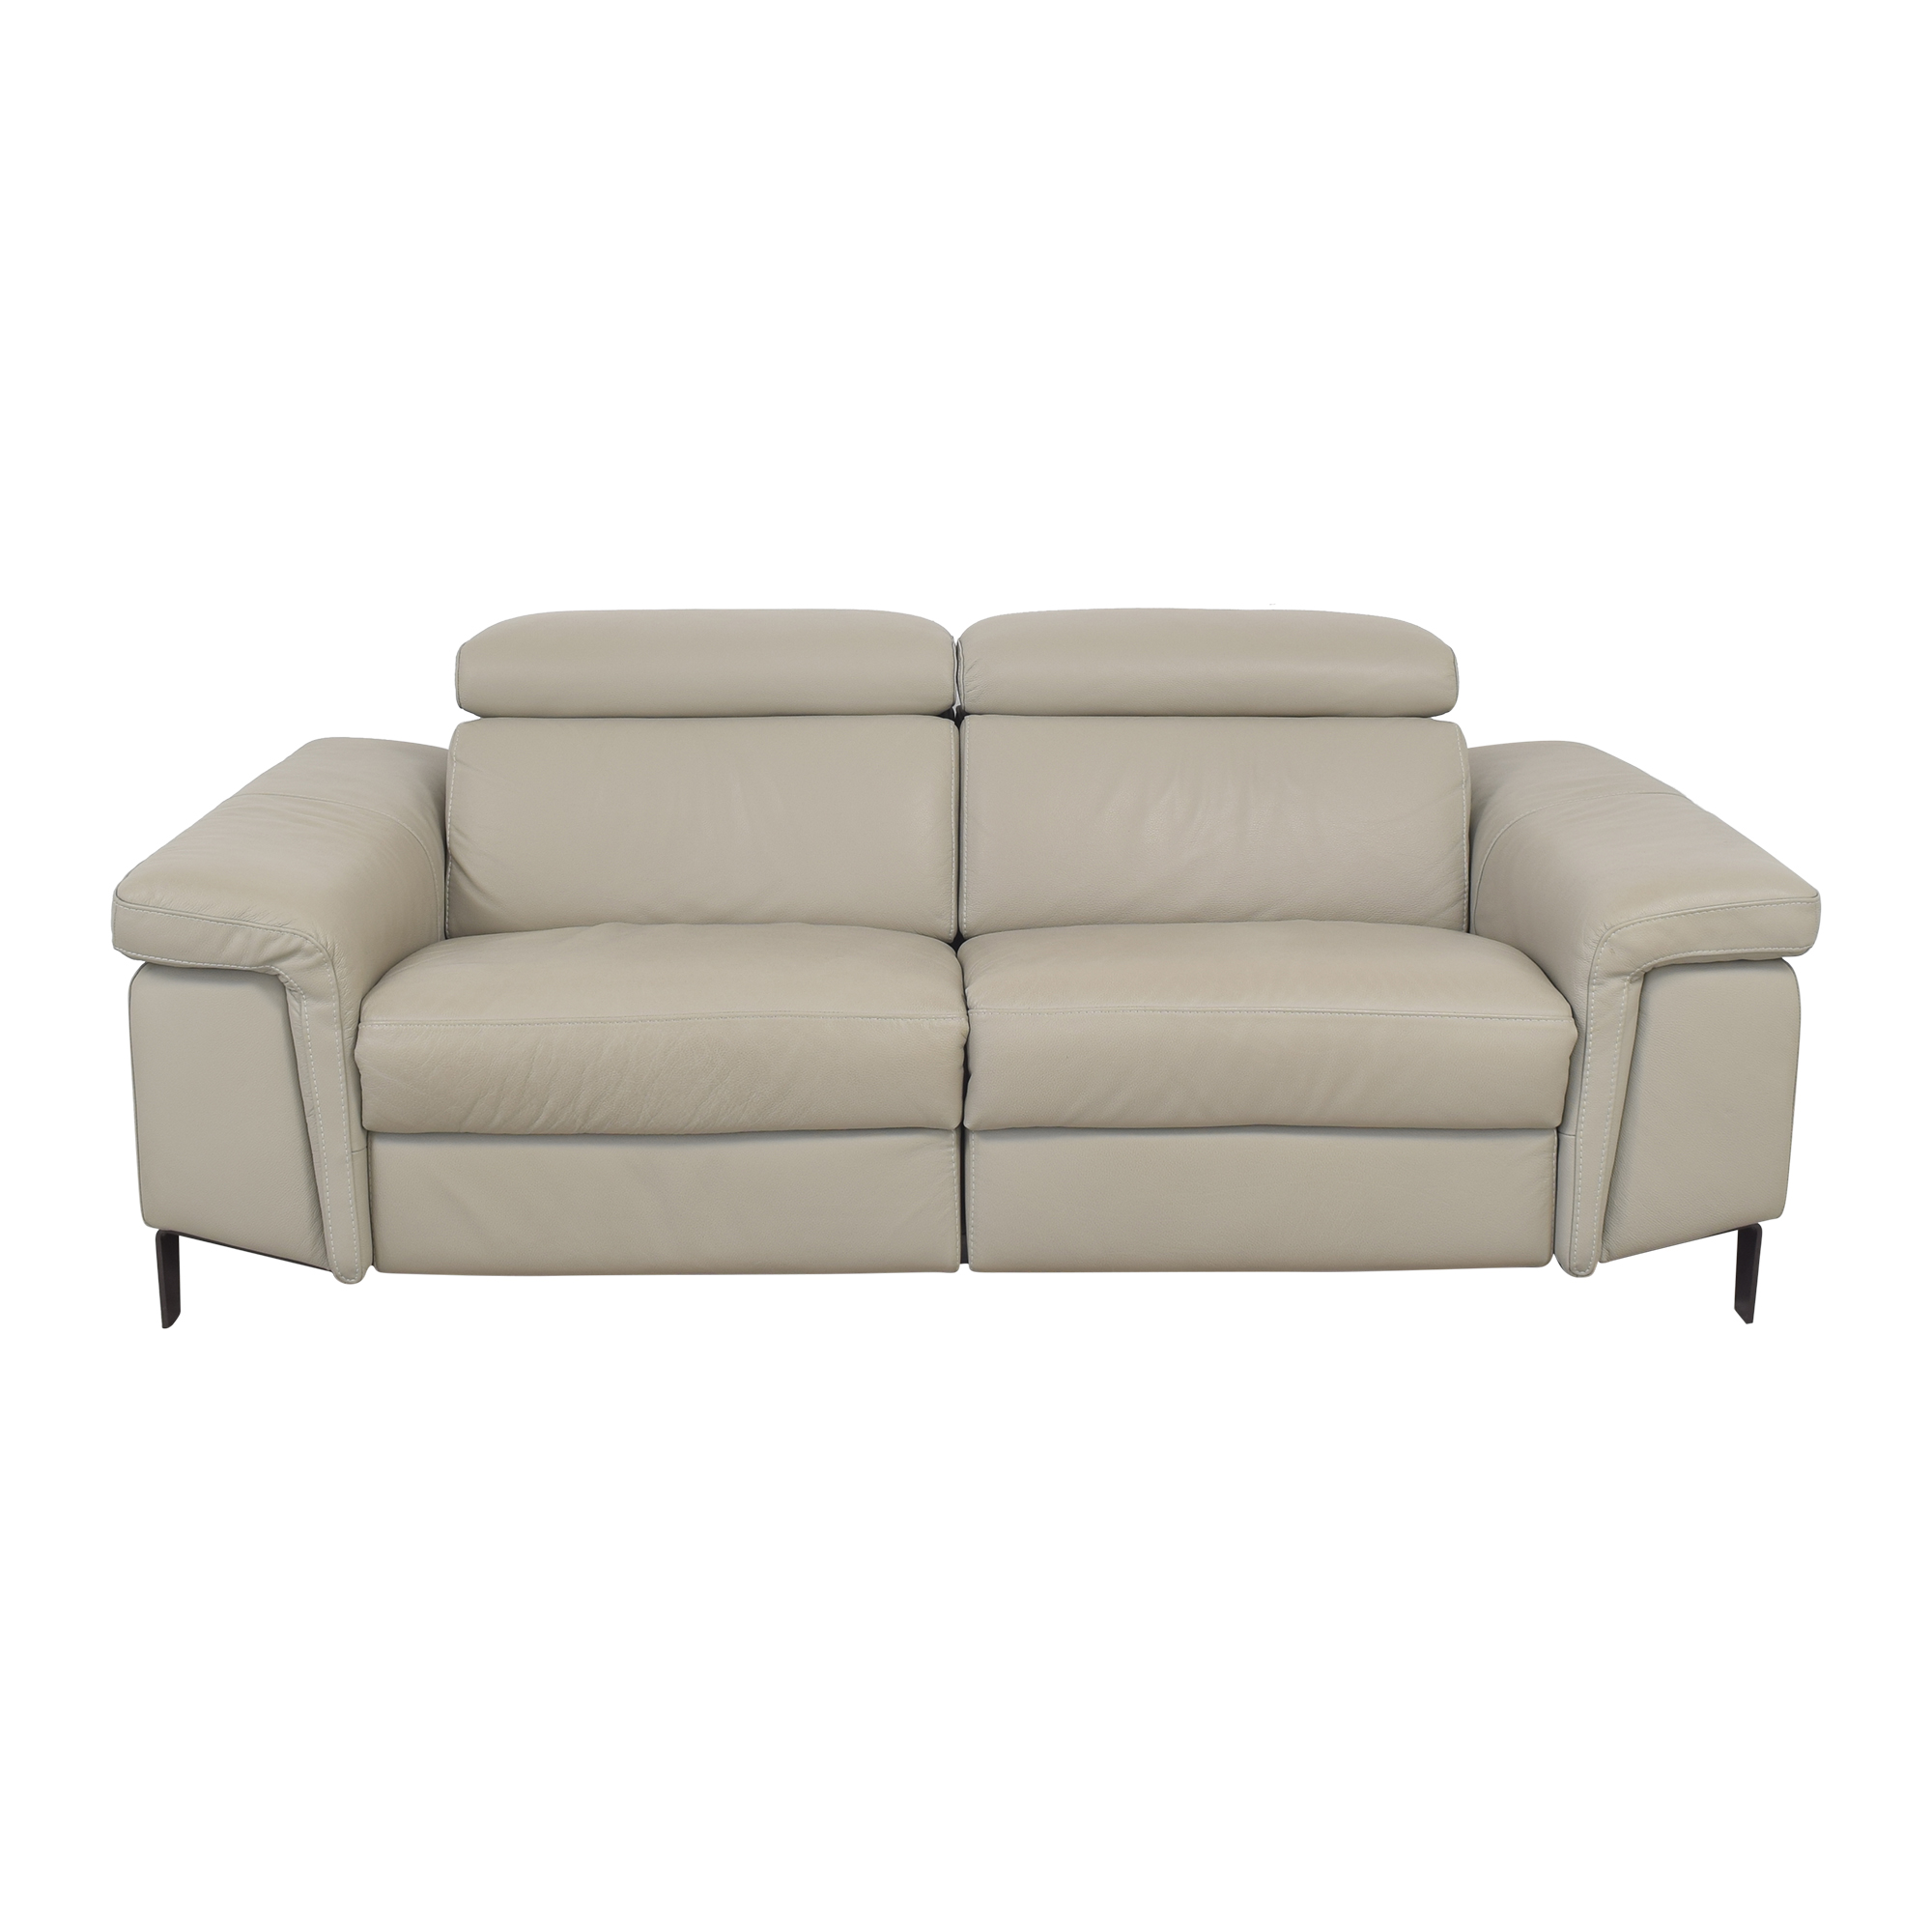 Nicoletti Home Nicoletti Home Peter Motion Sofa nj